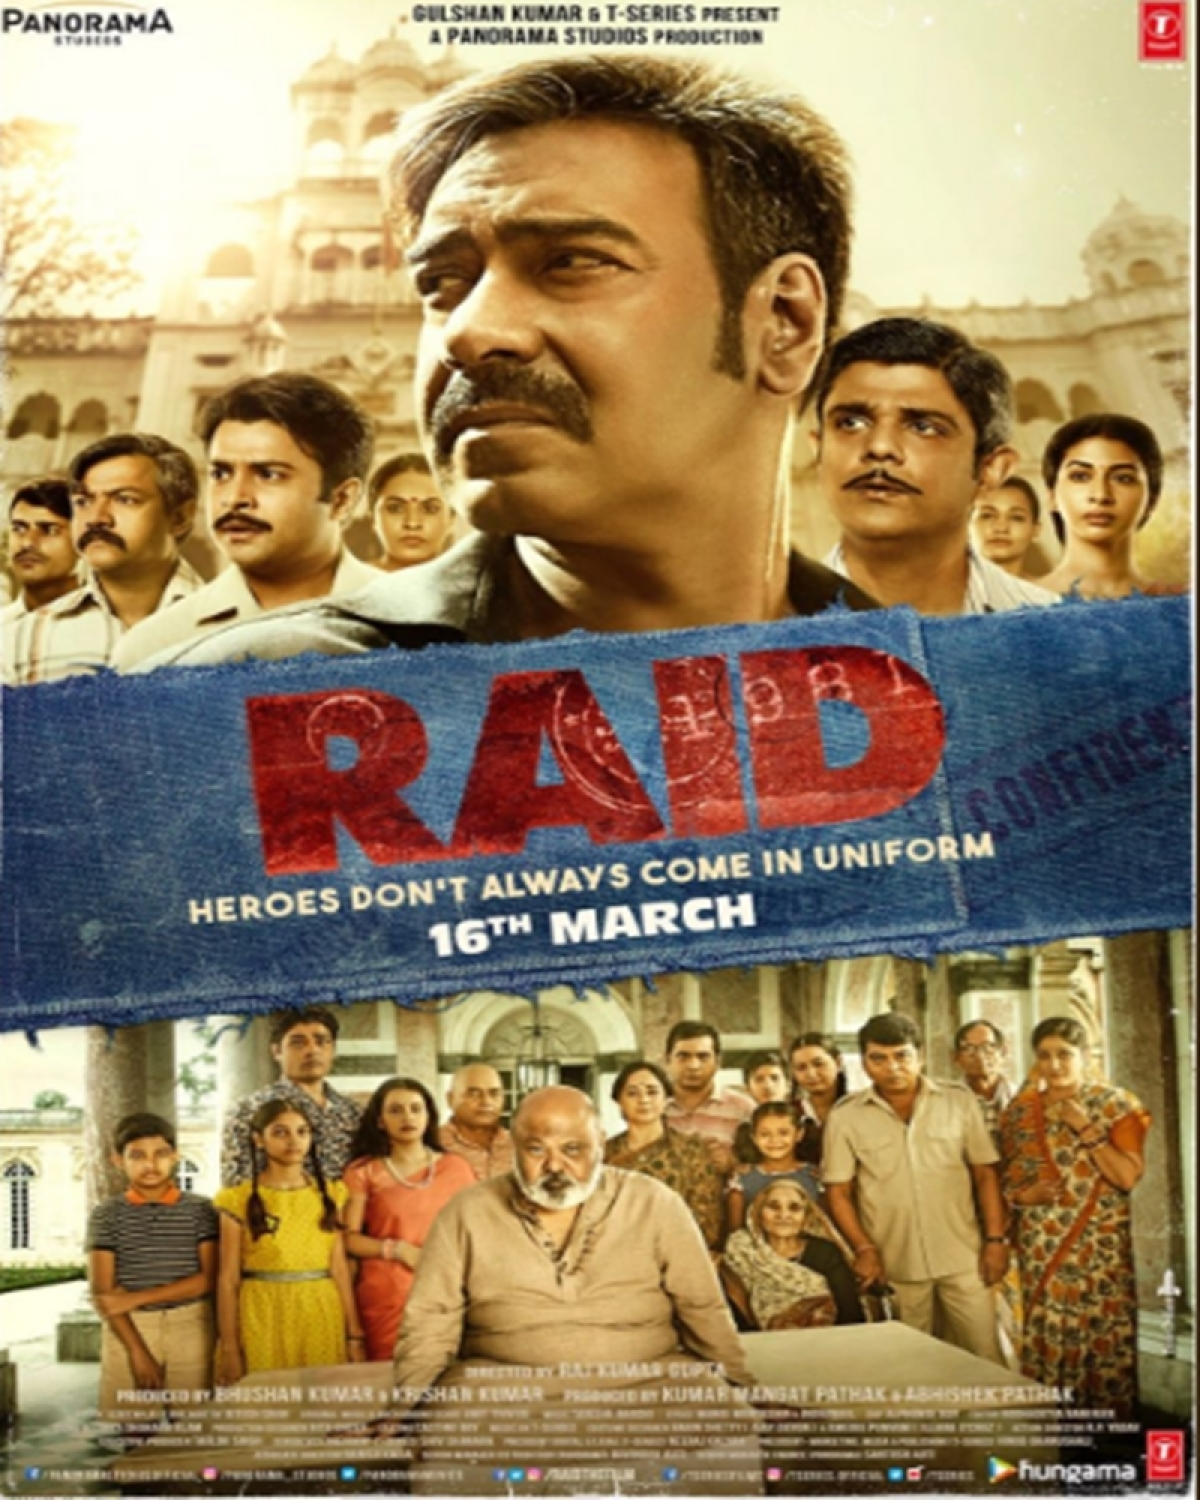 Raid new poster: Ajay Devgn and his team are all set for a mission